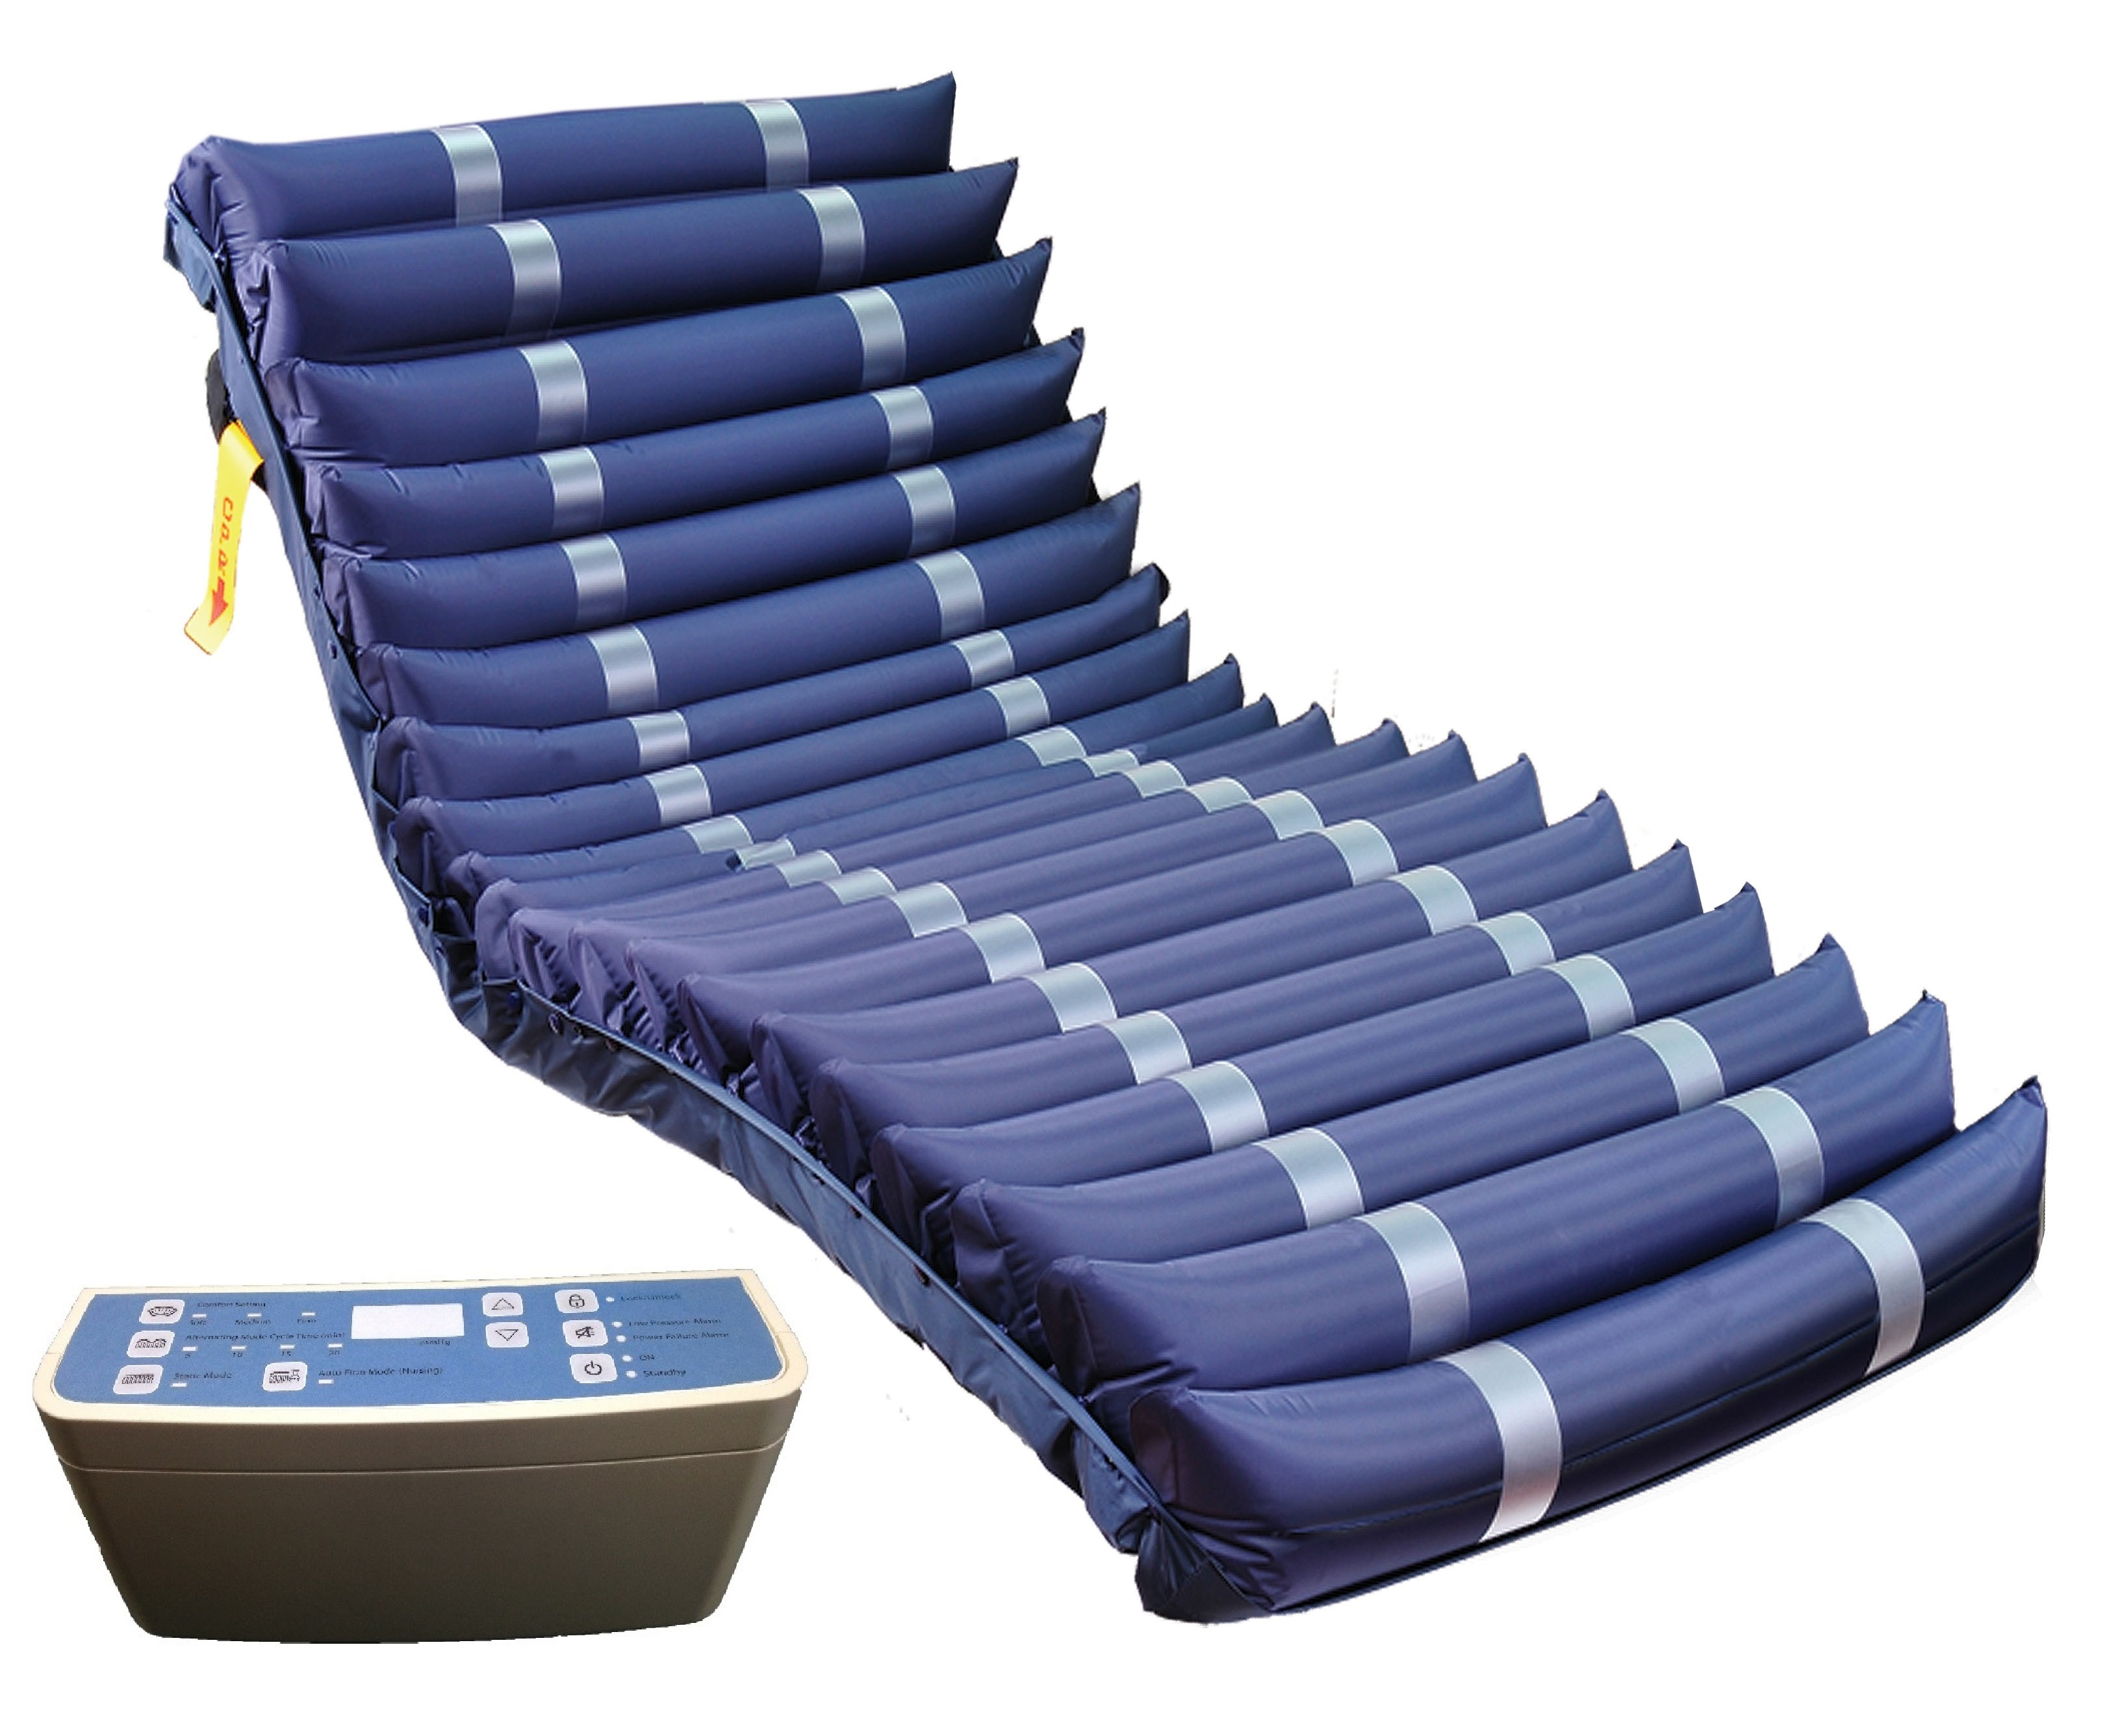 Bed Overlay Taiwan Ts 705 5 Hospital Bed Overlay Air Mattress With Pump